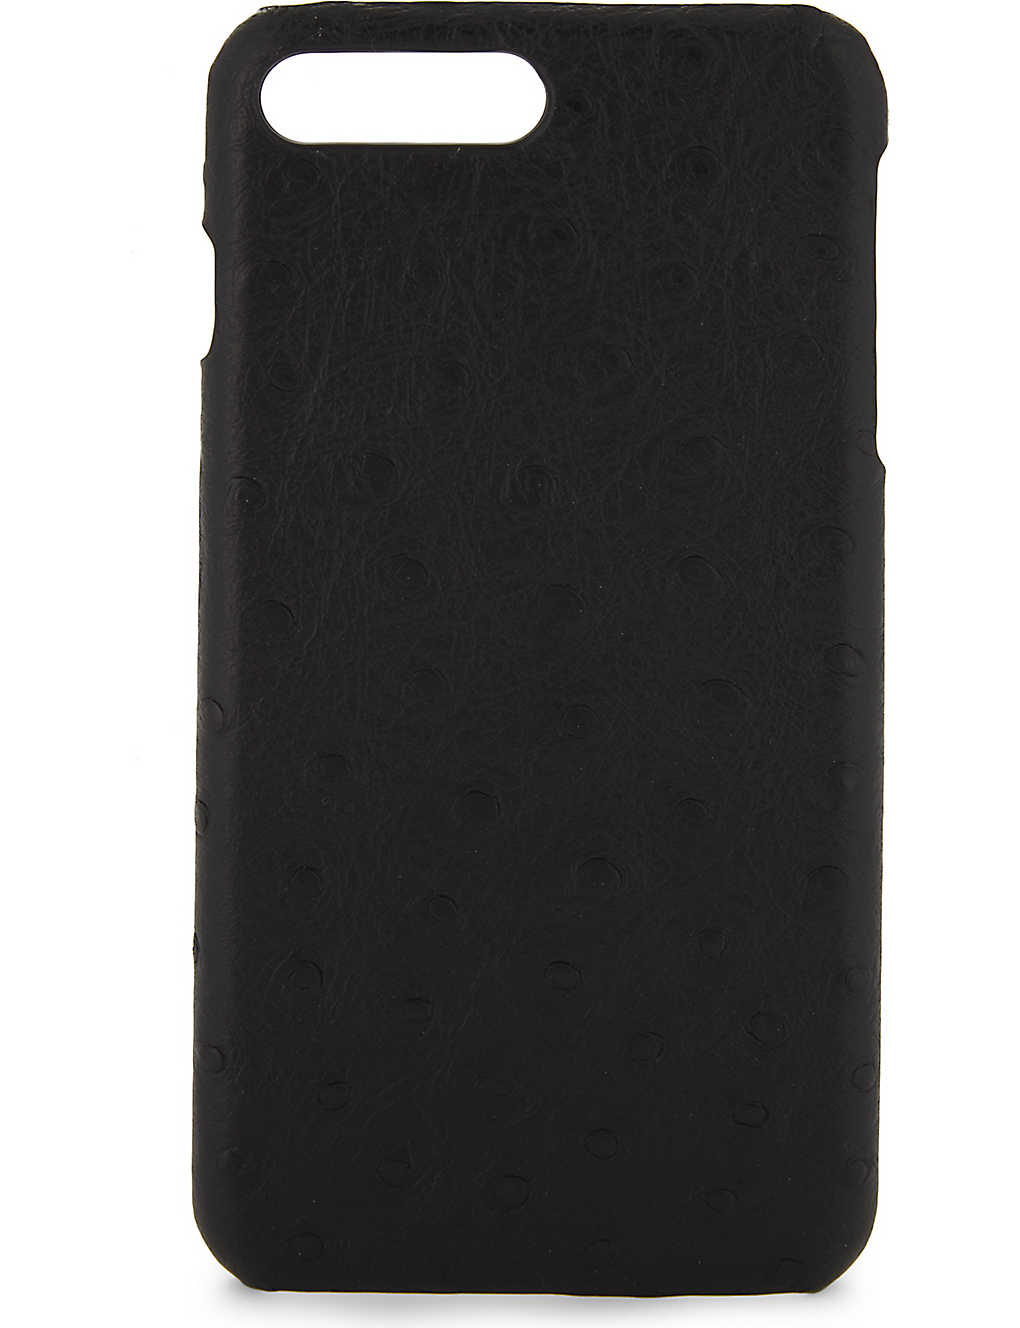 best service 1215f 986ab THE CASE FACTORY - Ostrich effect leather iPhone 7 Plus/8 Plus case ...